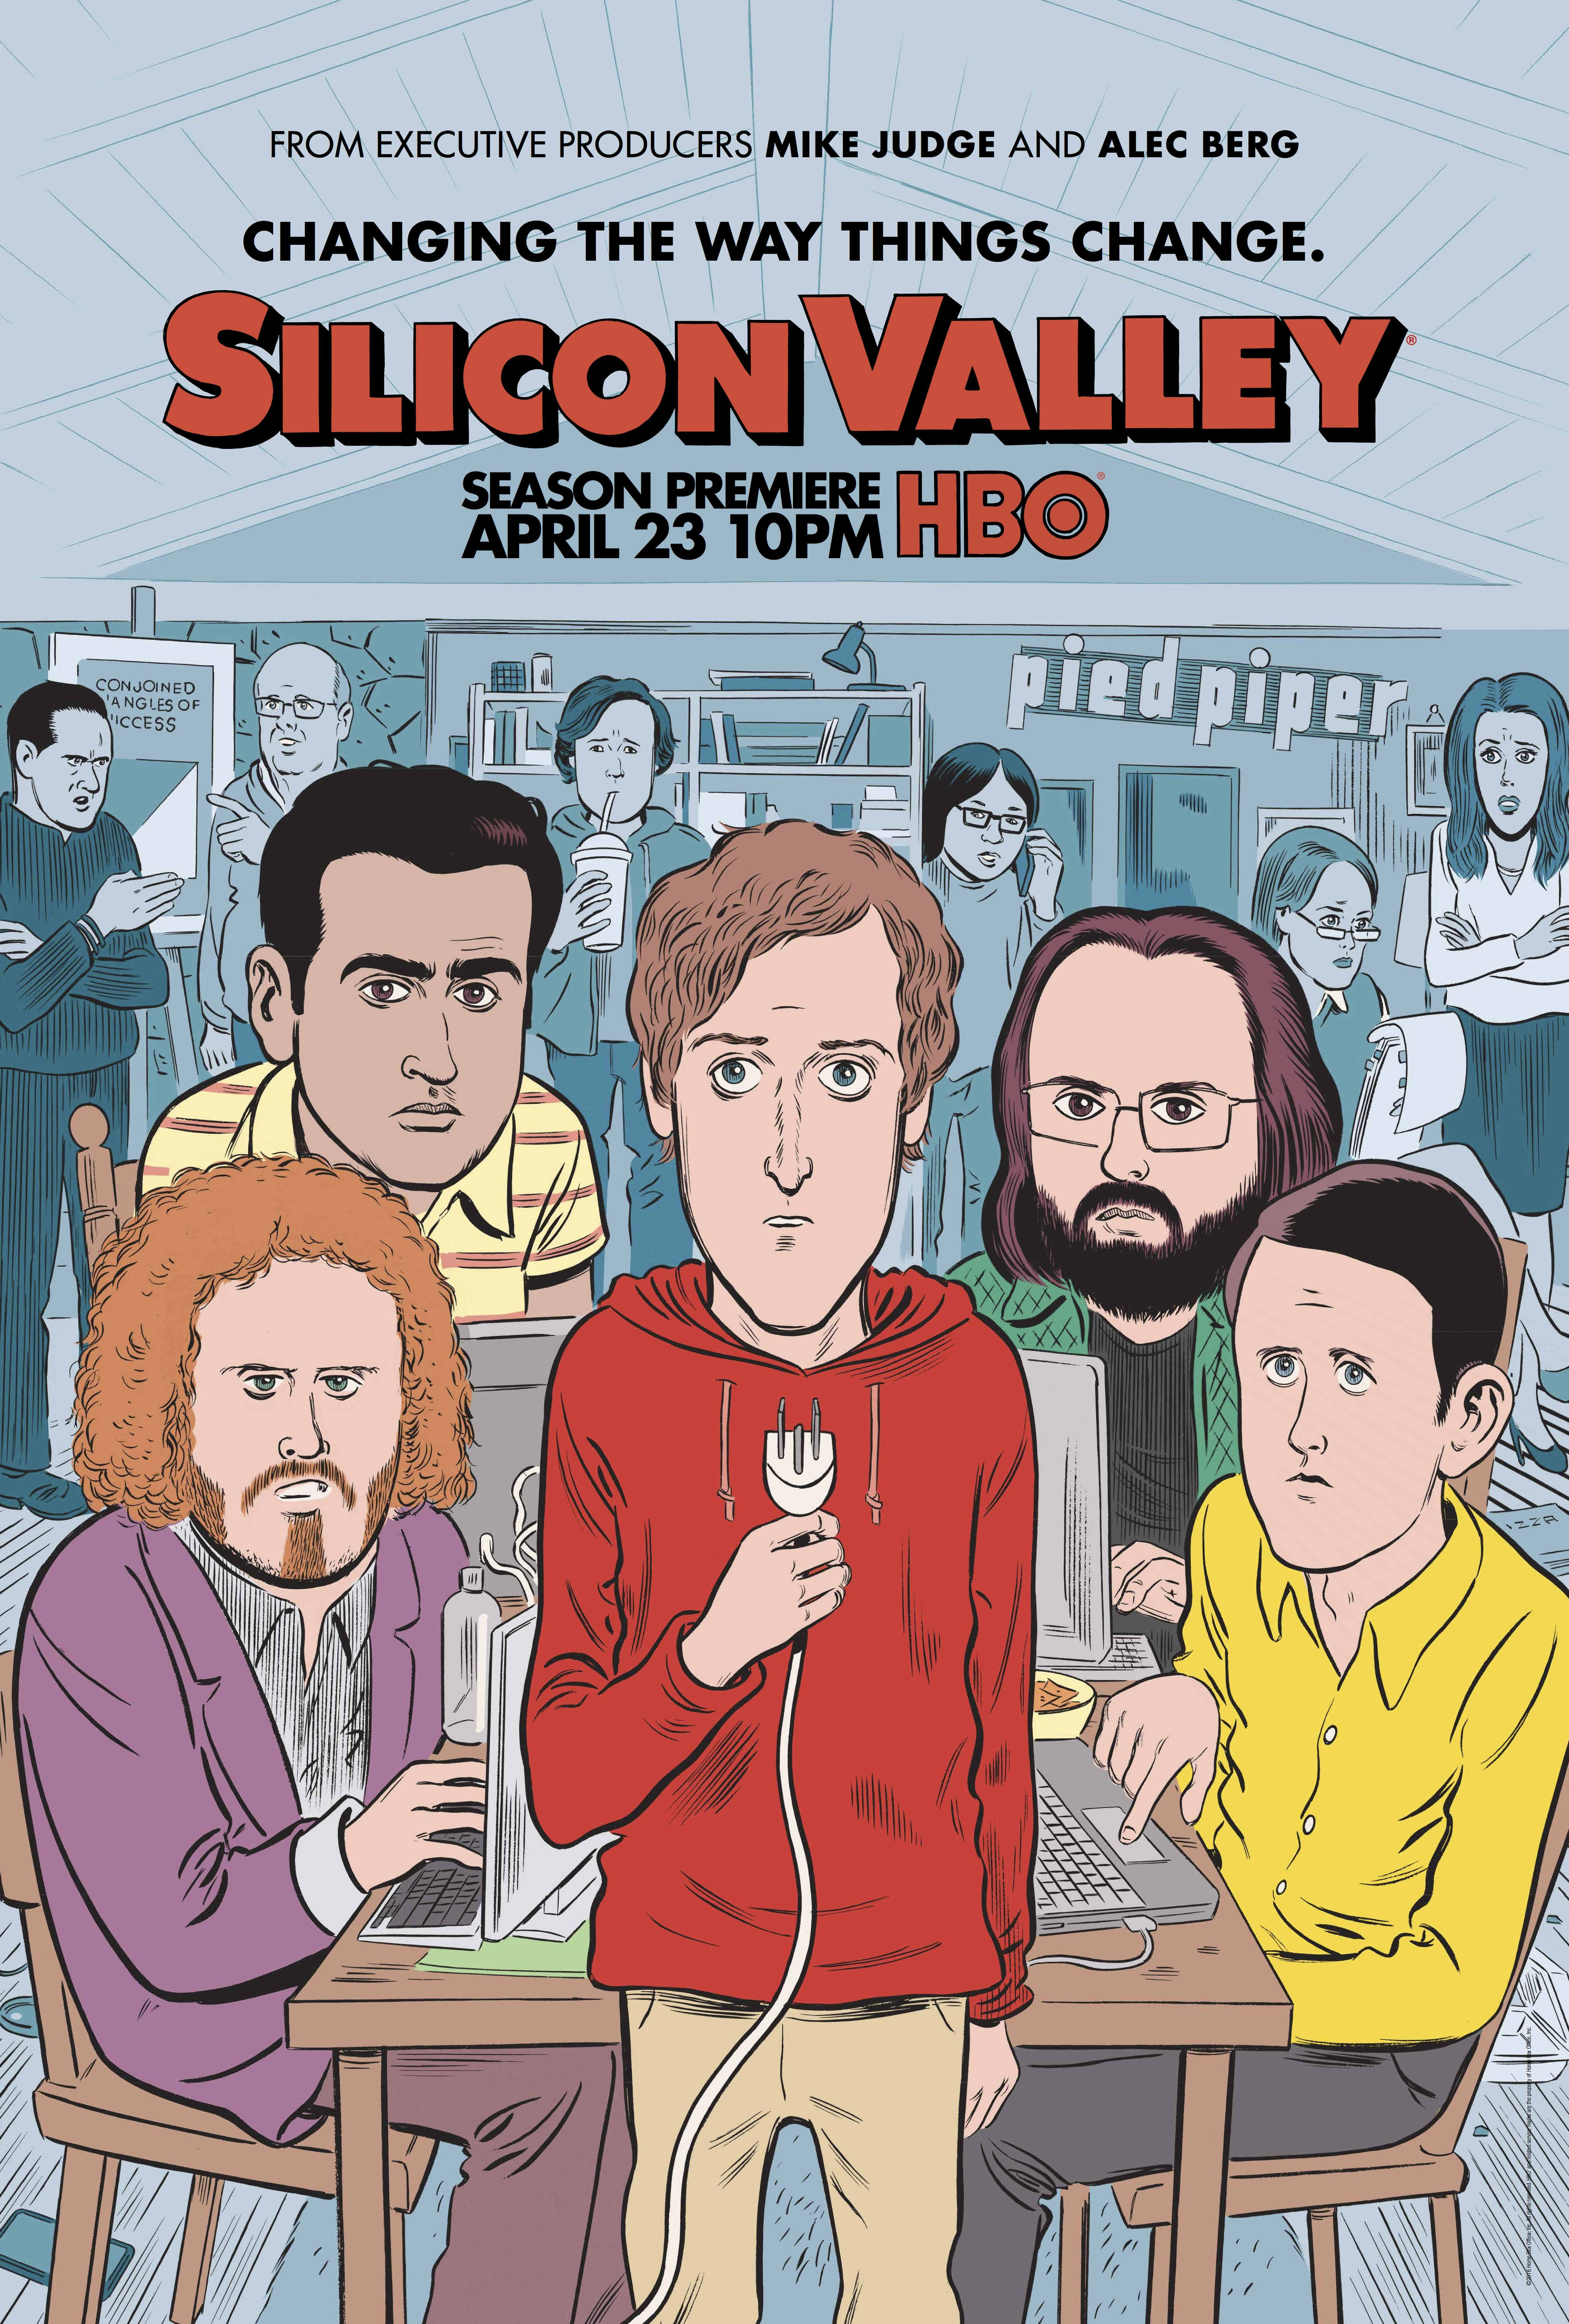 Silicon Valley Season 4Daniel Clowes Poster